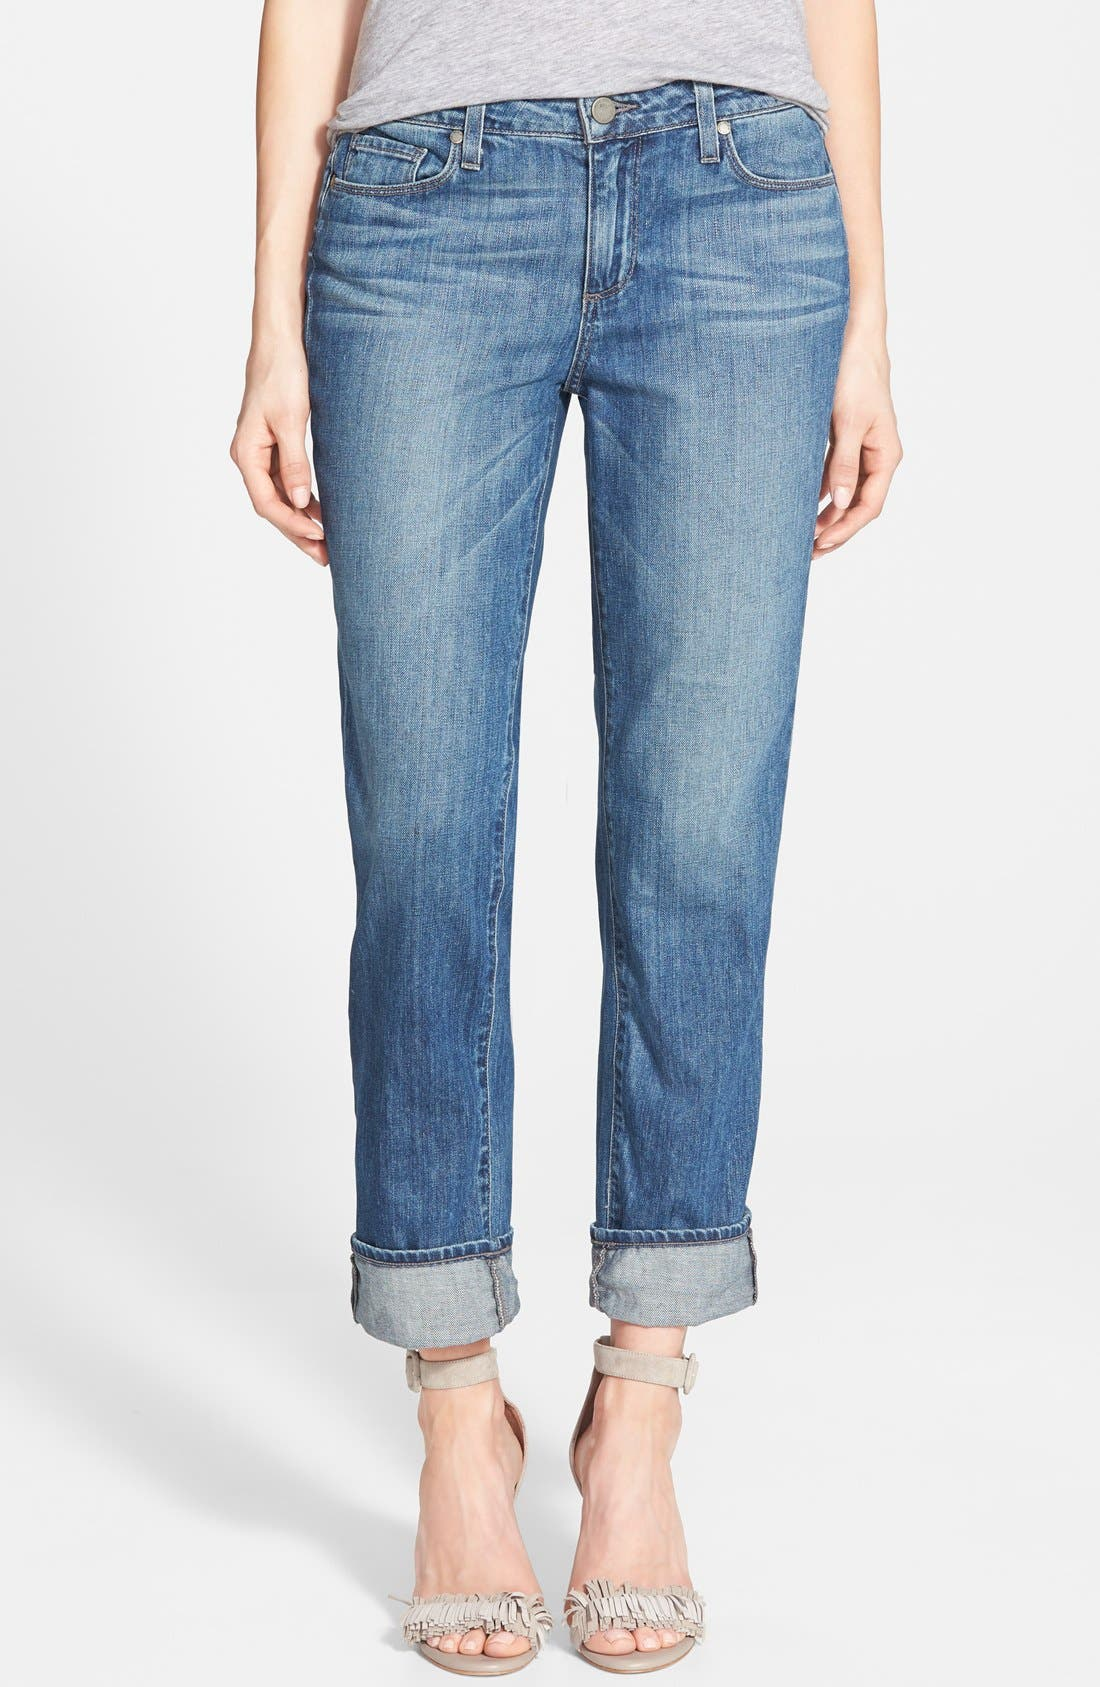 Alternate Image 1 Selected - Paige Denim 'Porter' Boyfriend Jeans (Dazely)